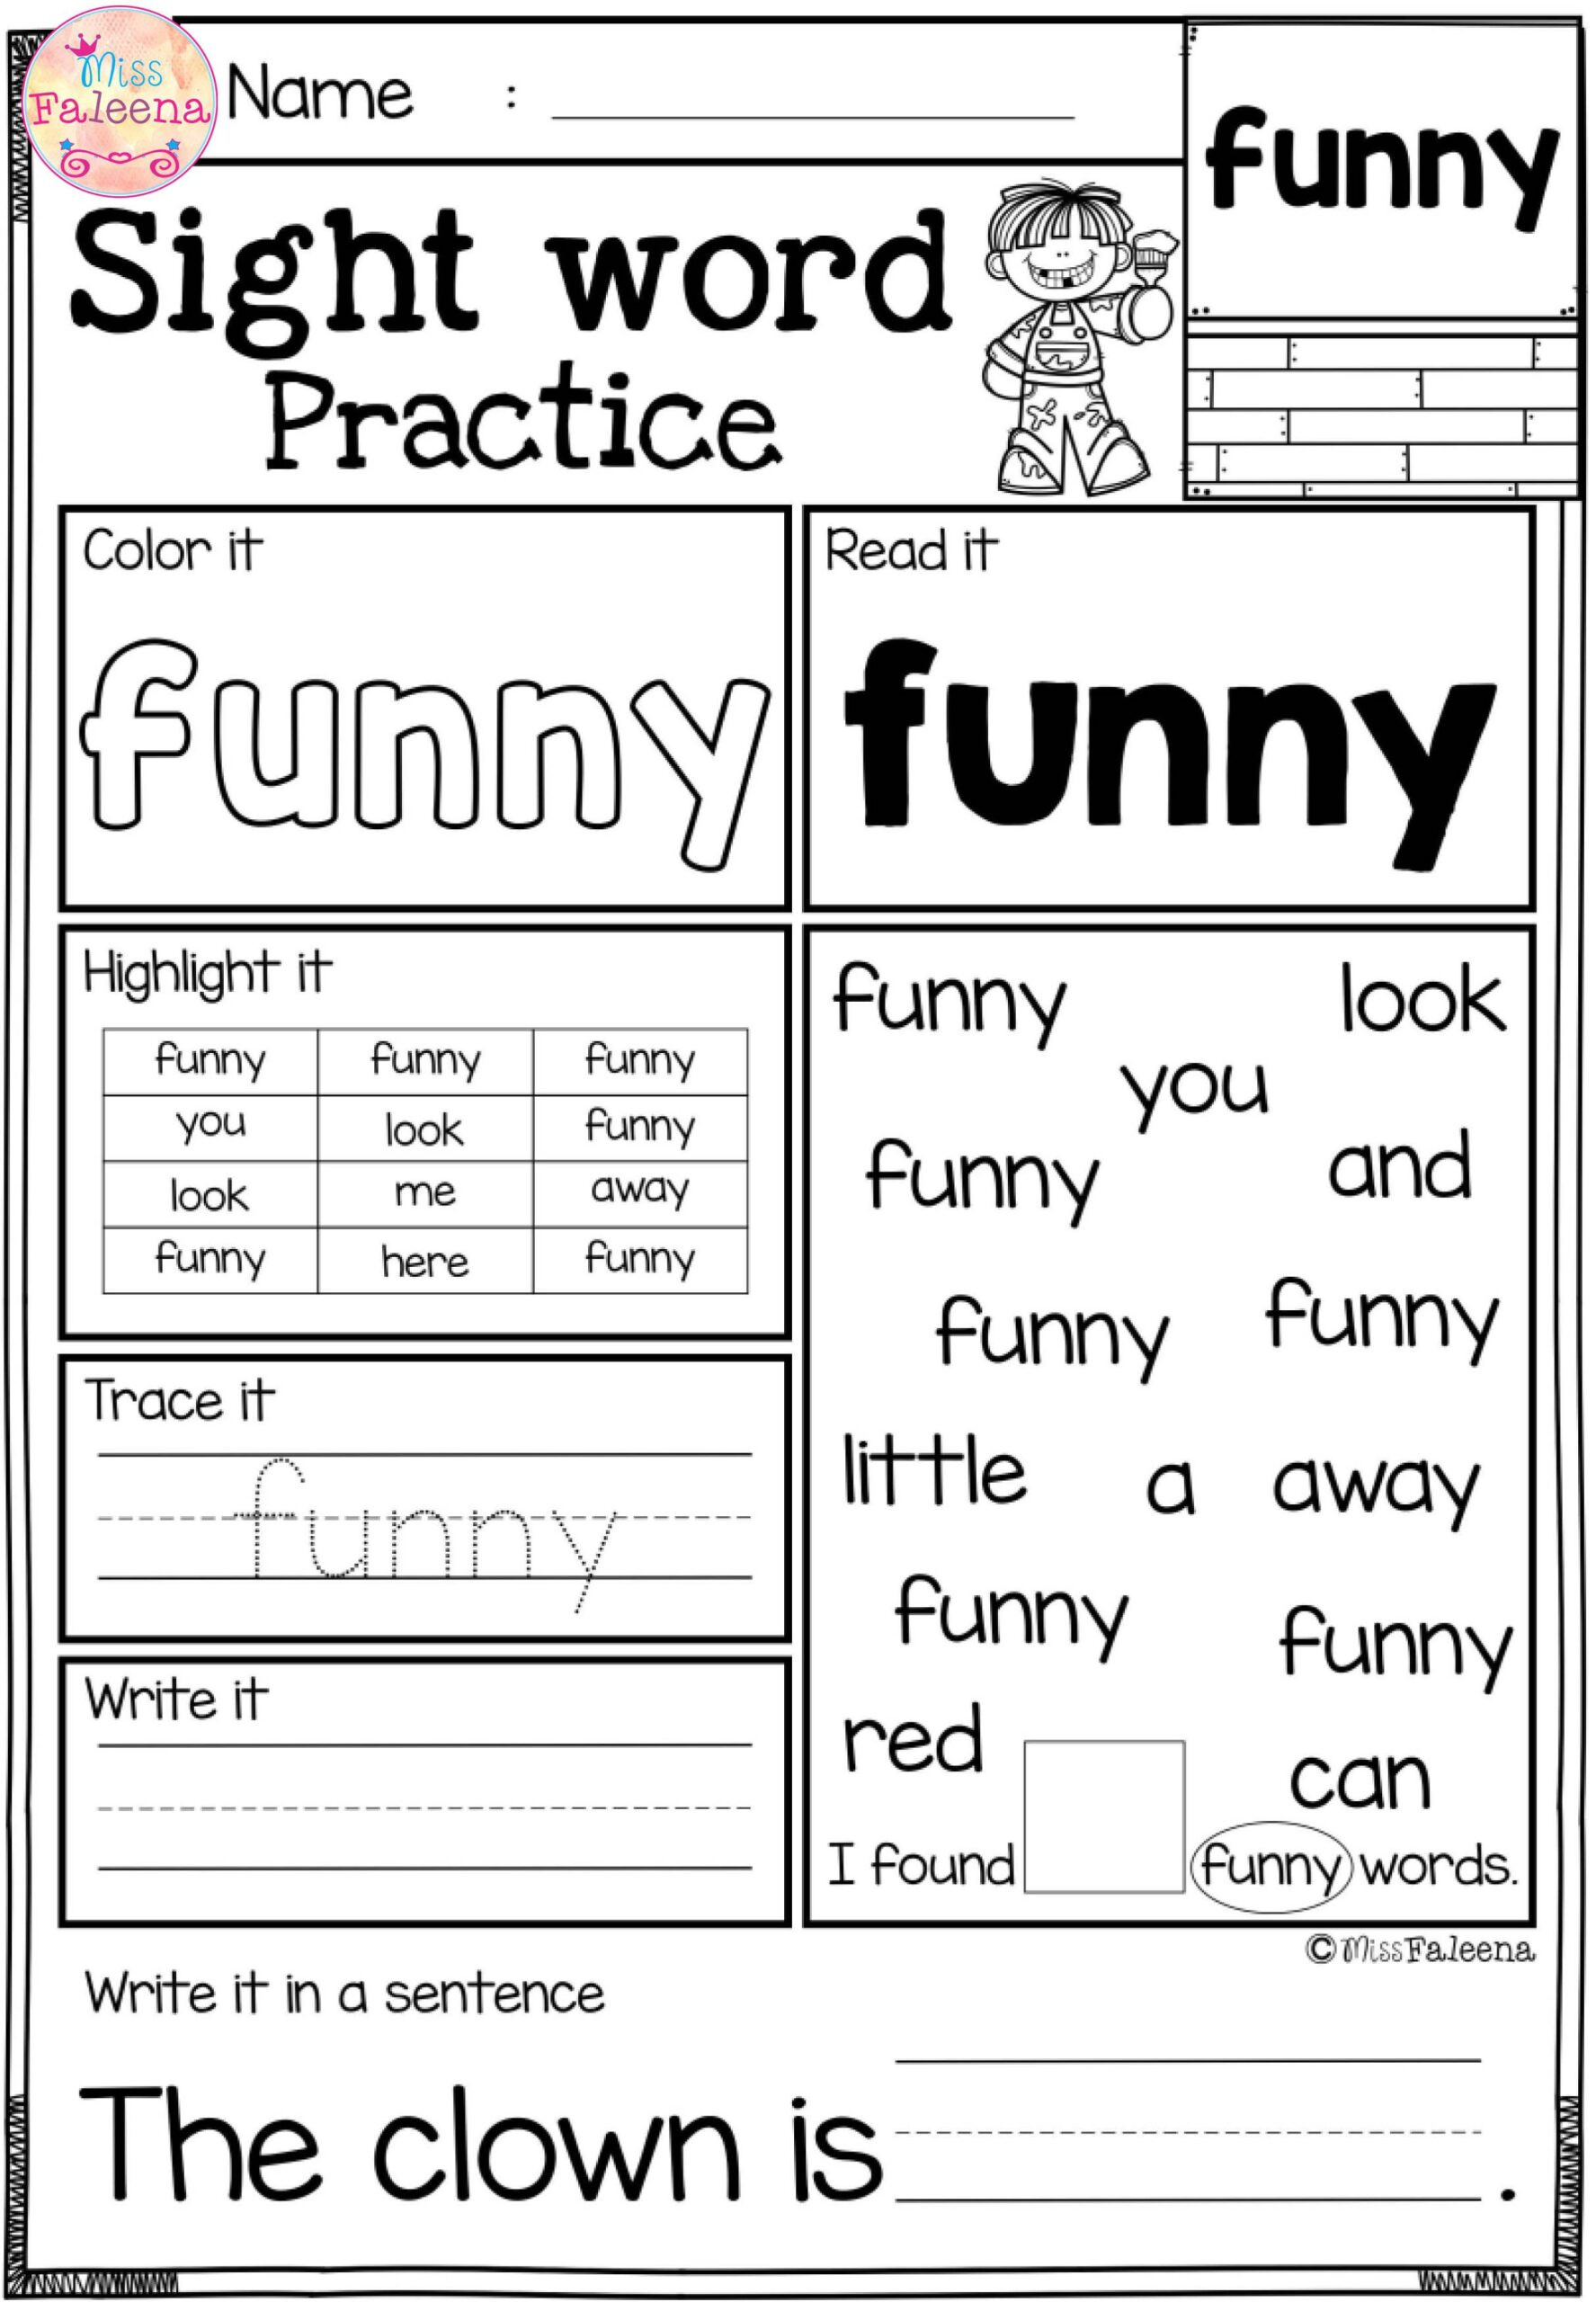 2nd Grade Sight Word Worksheets Free Sight Word Practice Fun Worksheets Grade Math Lessons